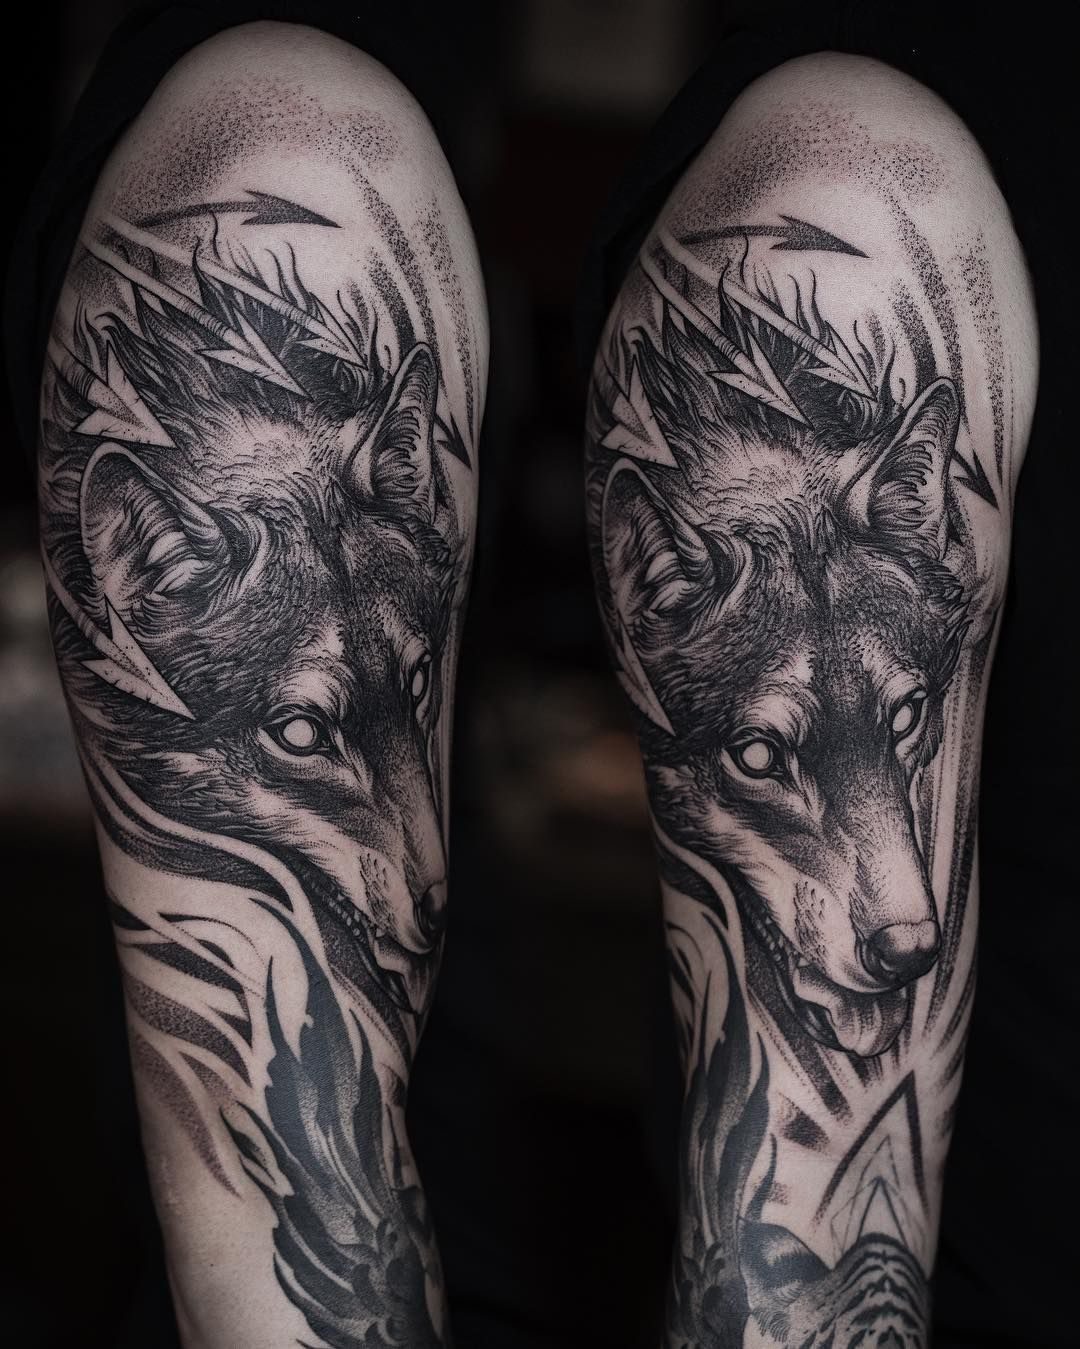 Cool Tattoo Ideas For Men And Women The Wild Tattoo Design Pictures 2019 In 2020 Wolf Tattoo Sleeve Wolf Tattoo Design Sleeve Tattoos